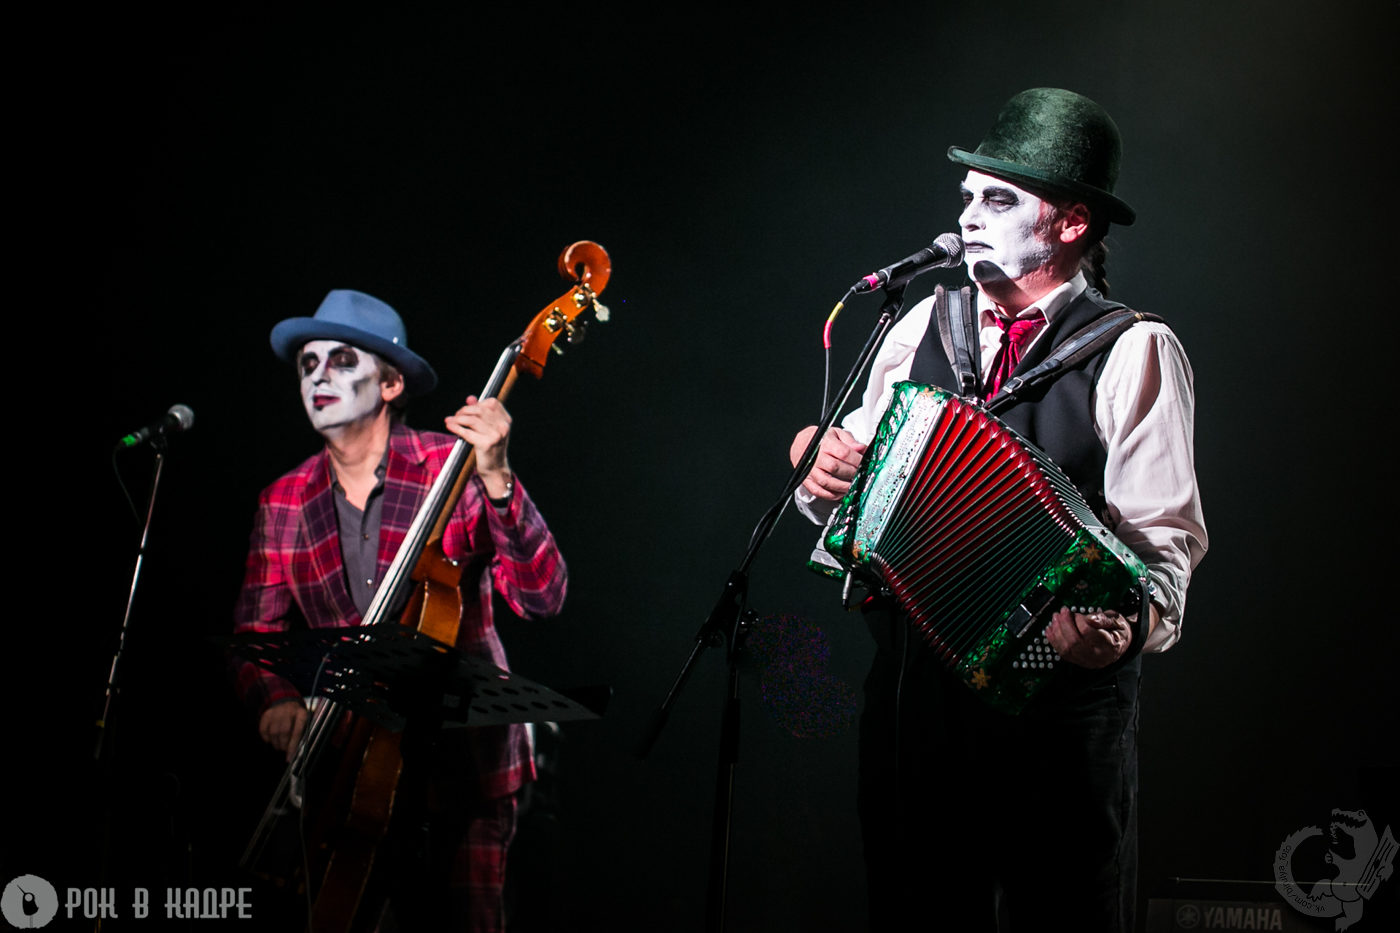 The Tiger Lillies в Санкт-Петербурге, в клубе Морзе 28.11.2019